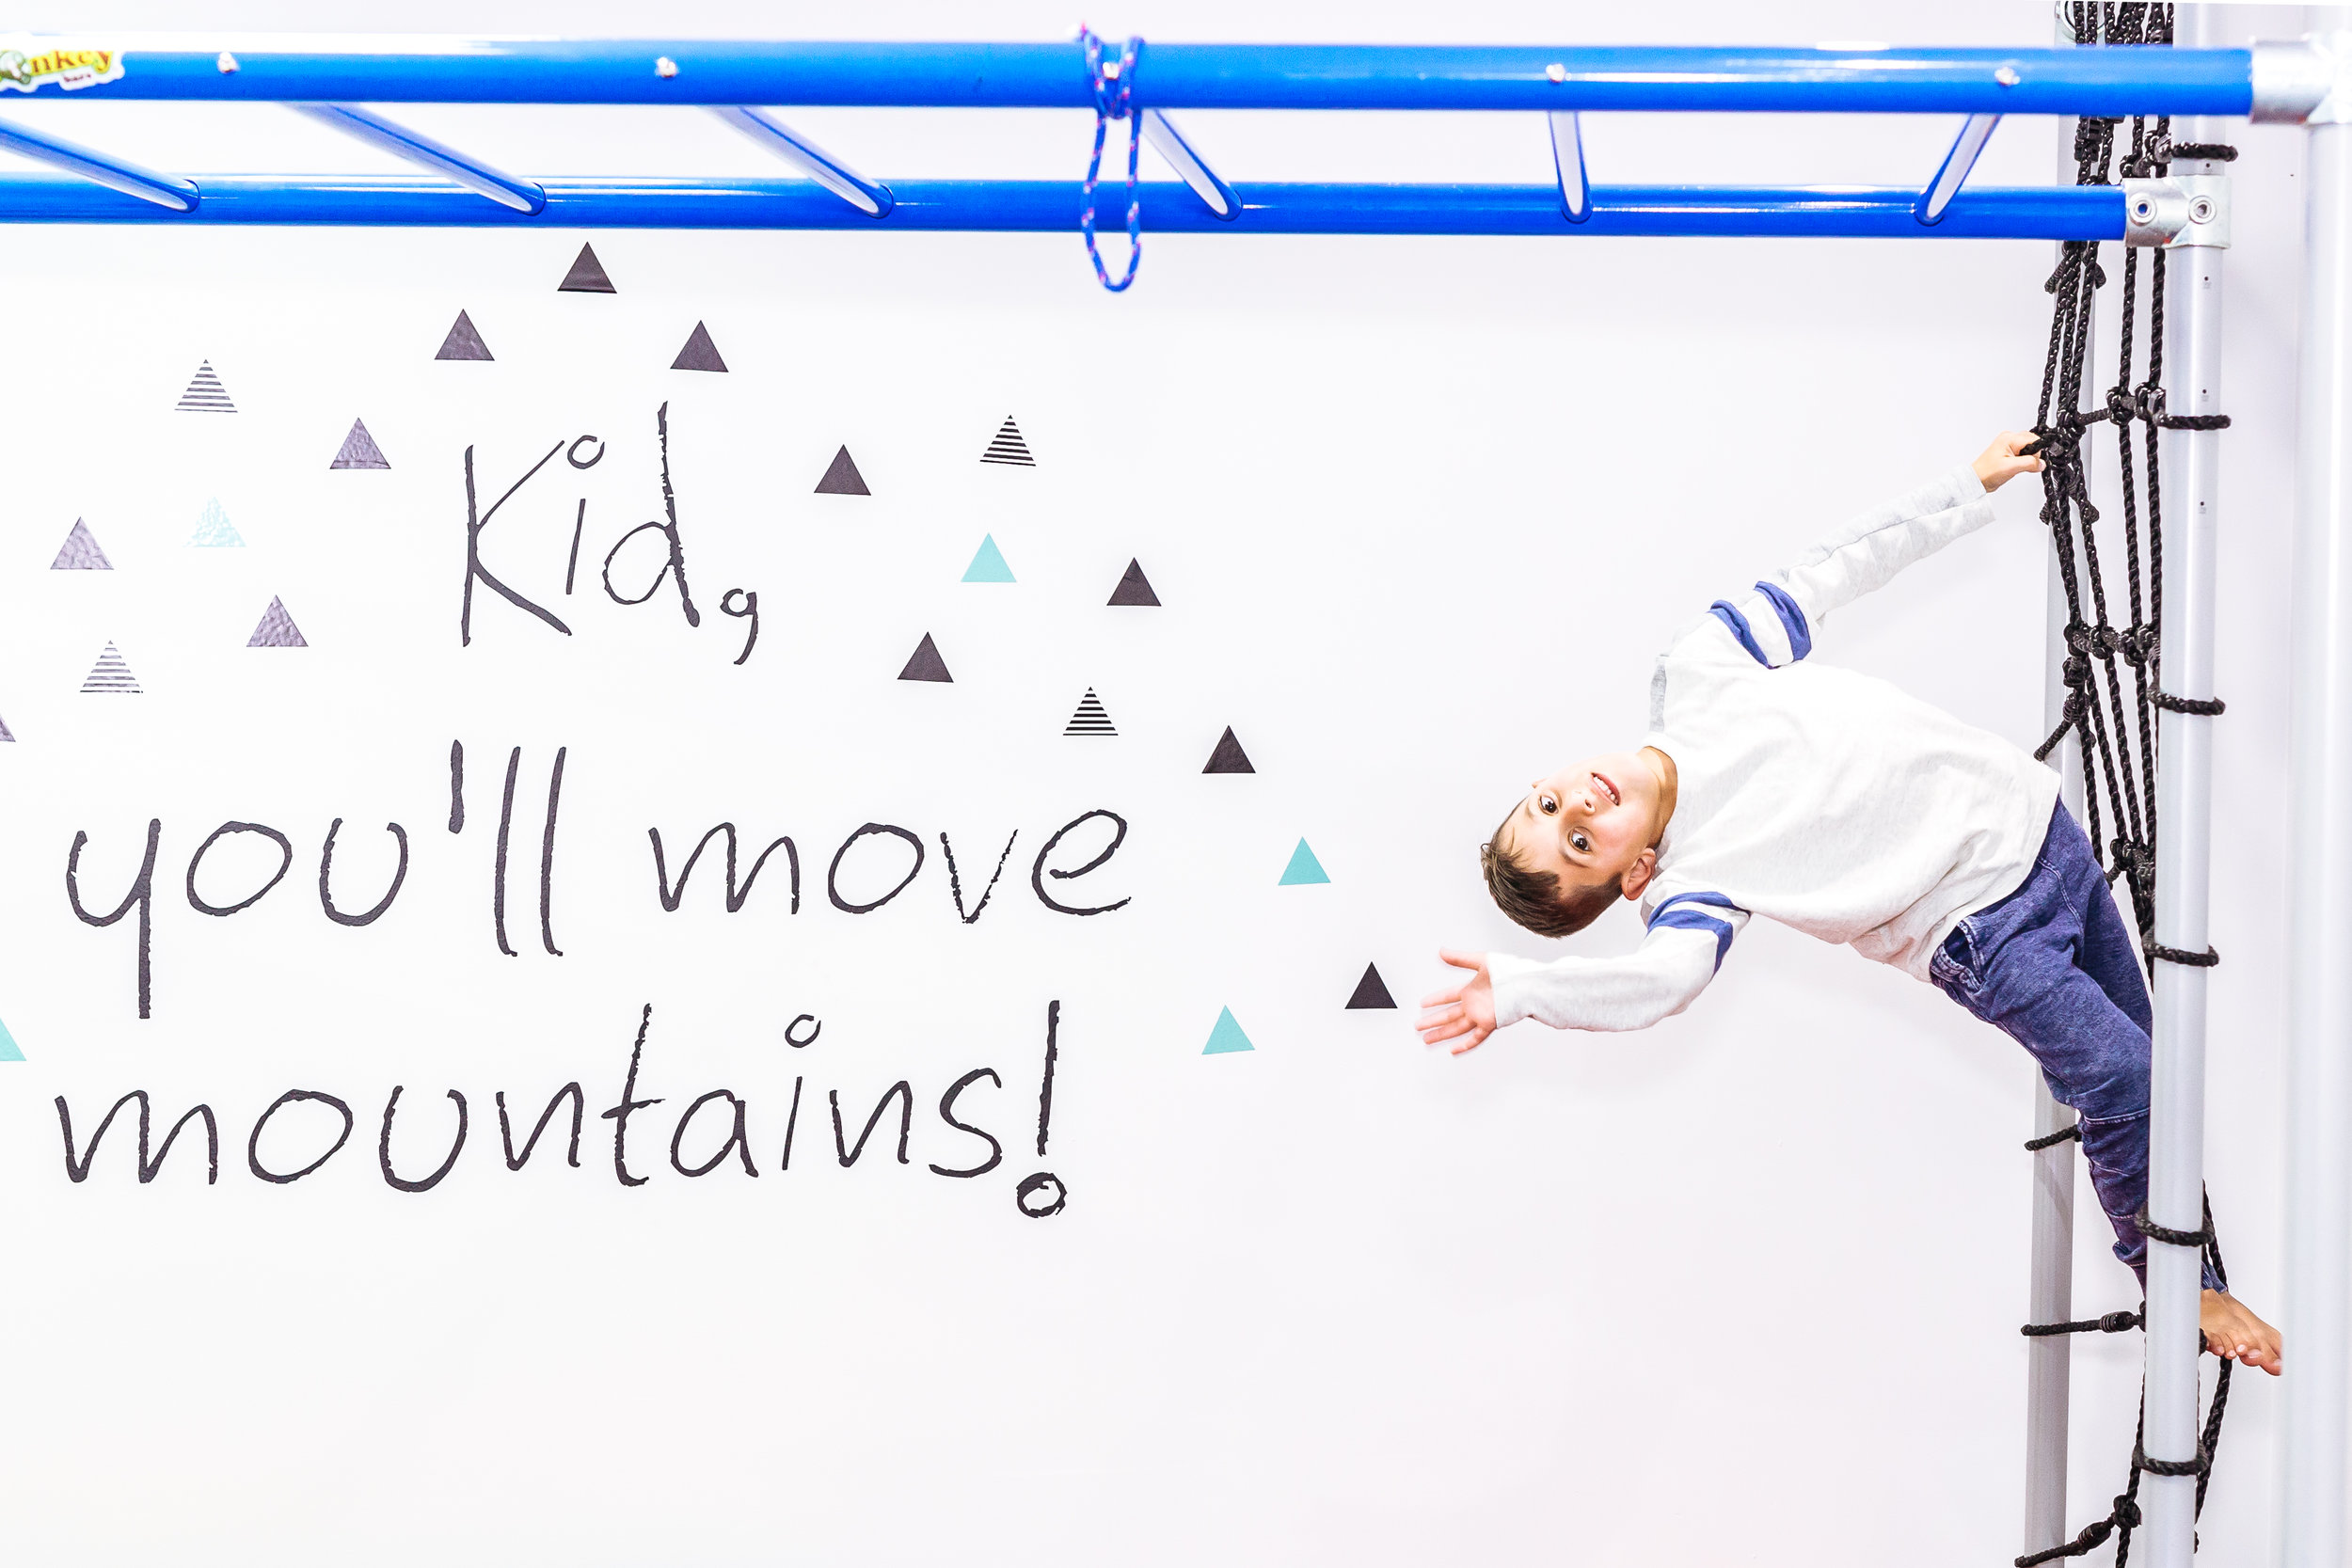 Marie-Criticos-Moving-Mountains-Pediatric-Occupational-Therapy-Hipster-Mum-Photography-_MG_6175-2.jpg